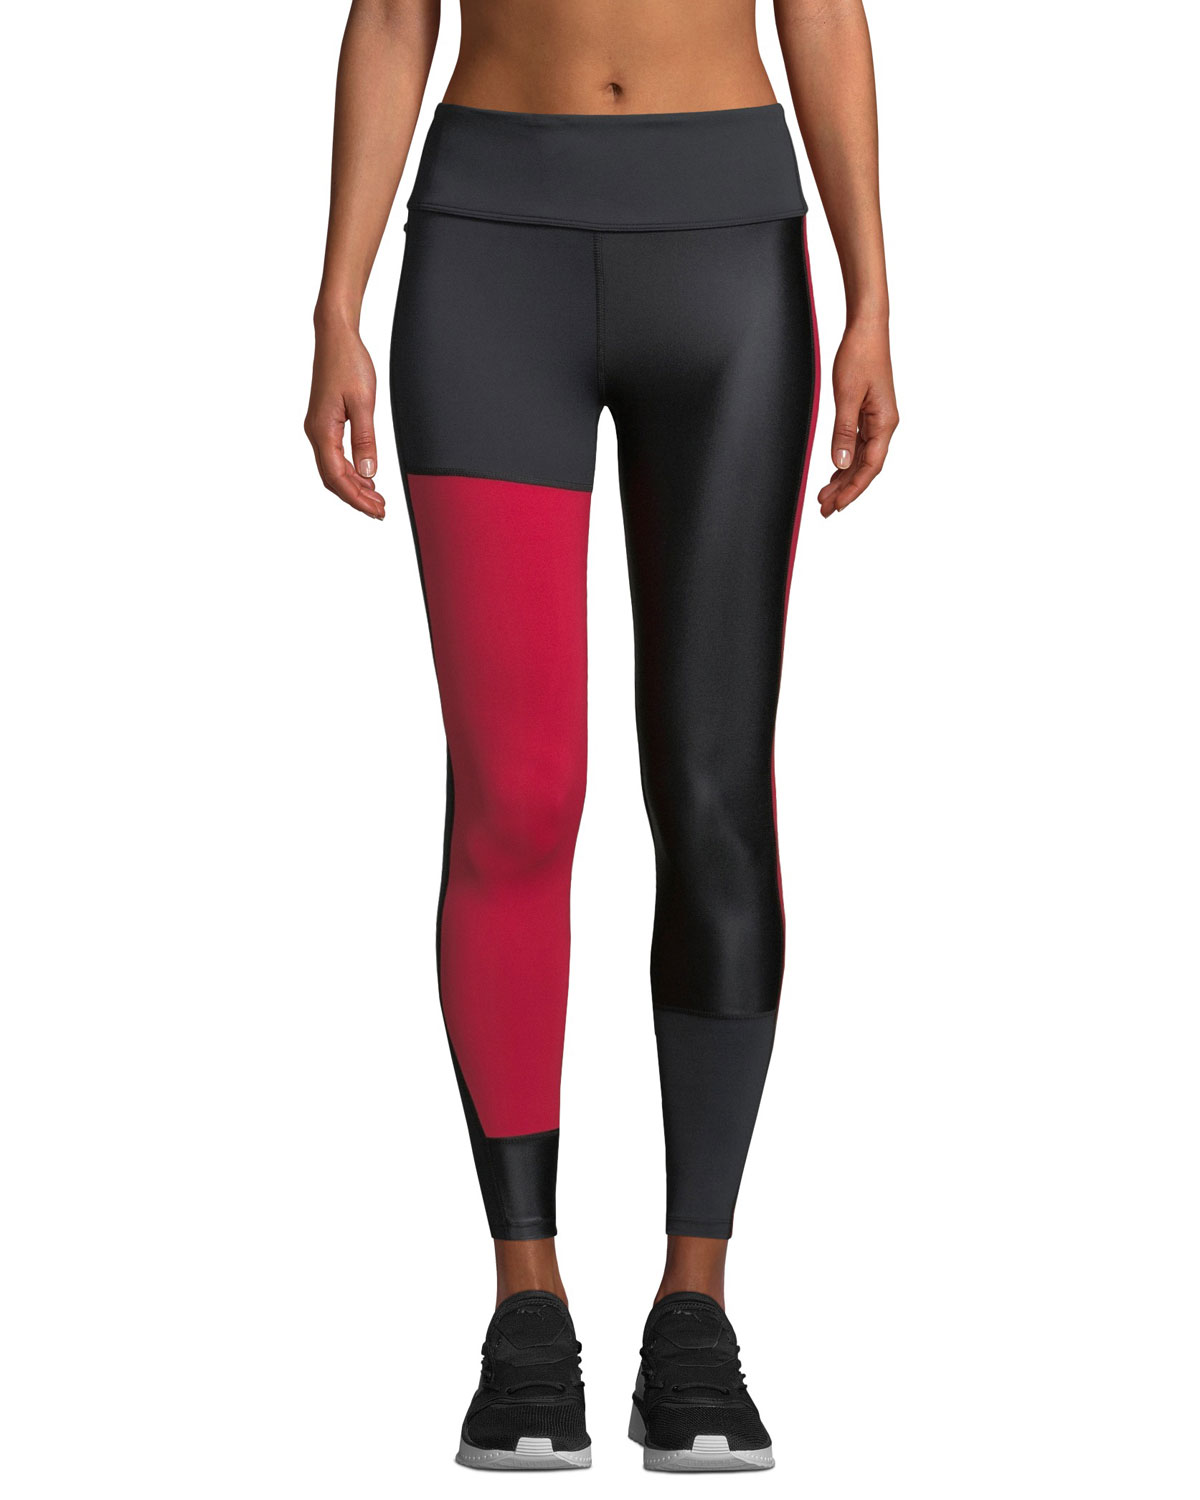 ALALA Patchwork Colorblock Performance Tights in Black/Red